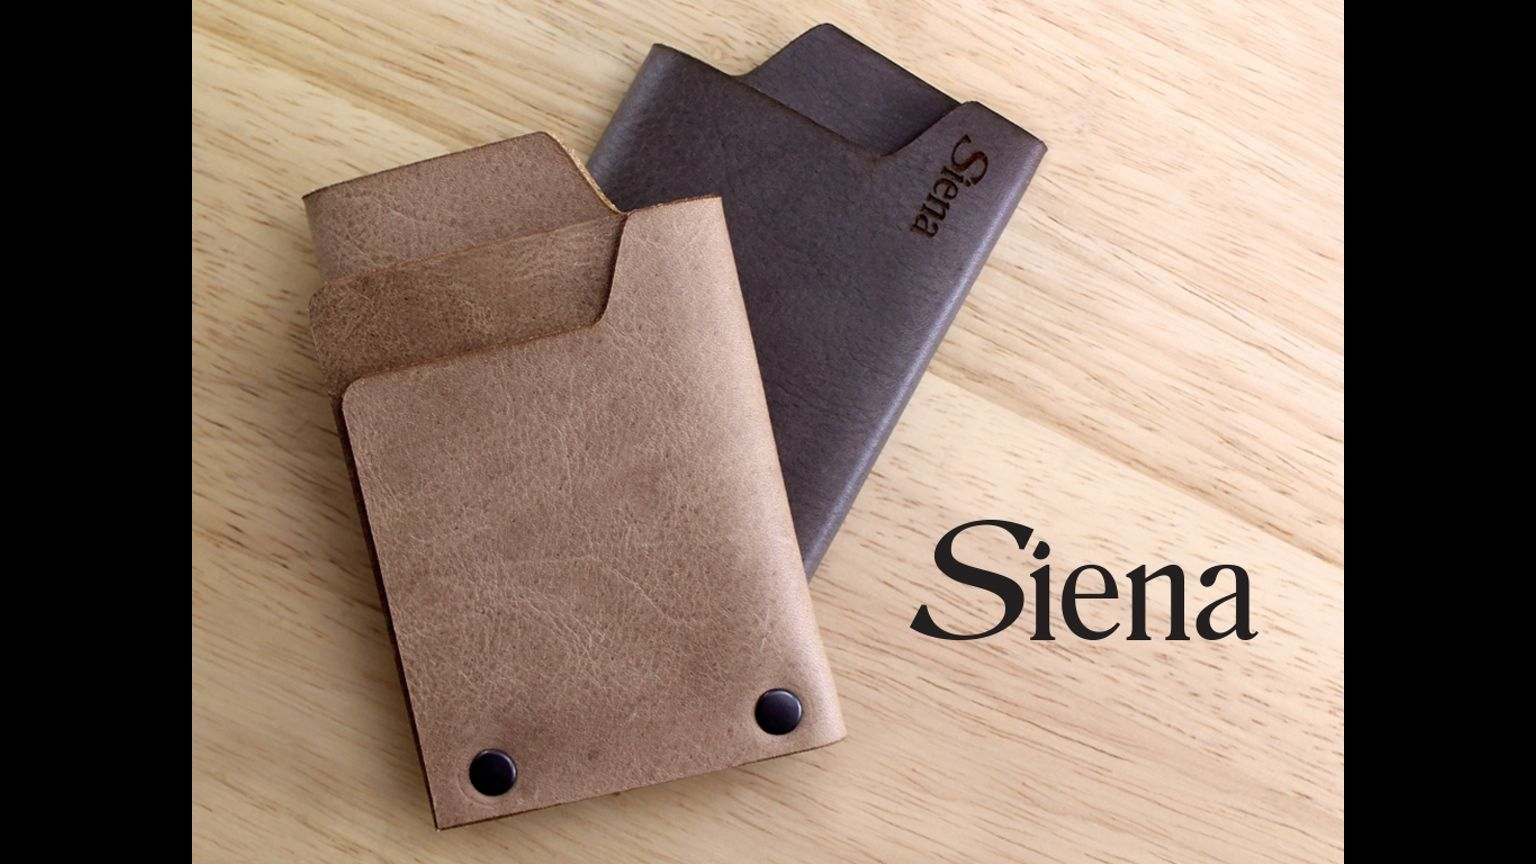 High quality vegetable tanned leather, simplified design, compact and different; perfect for all of your minimalist needs.